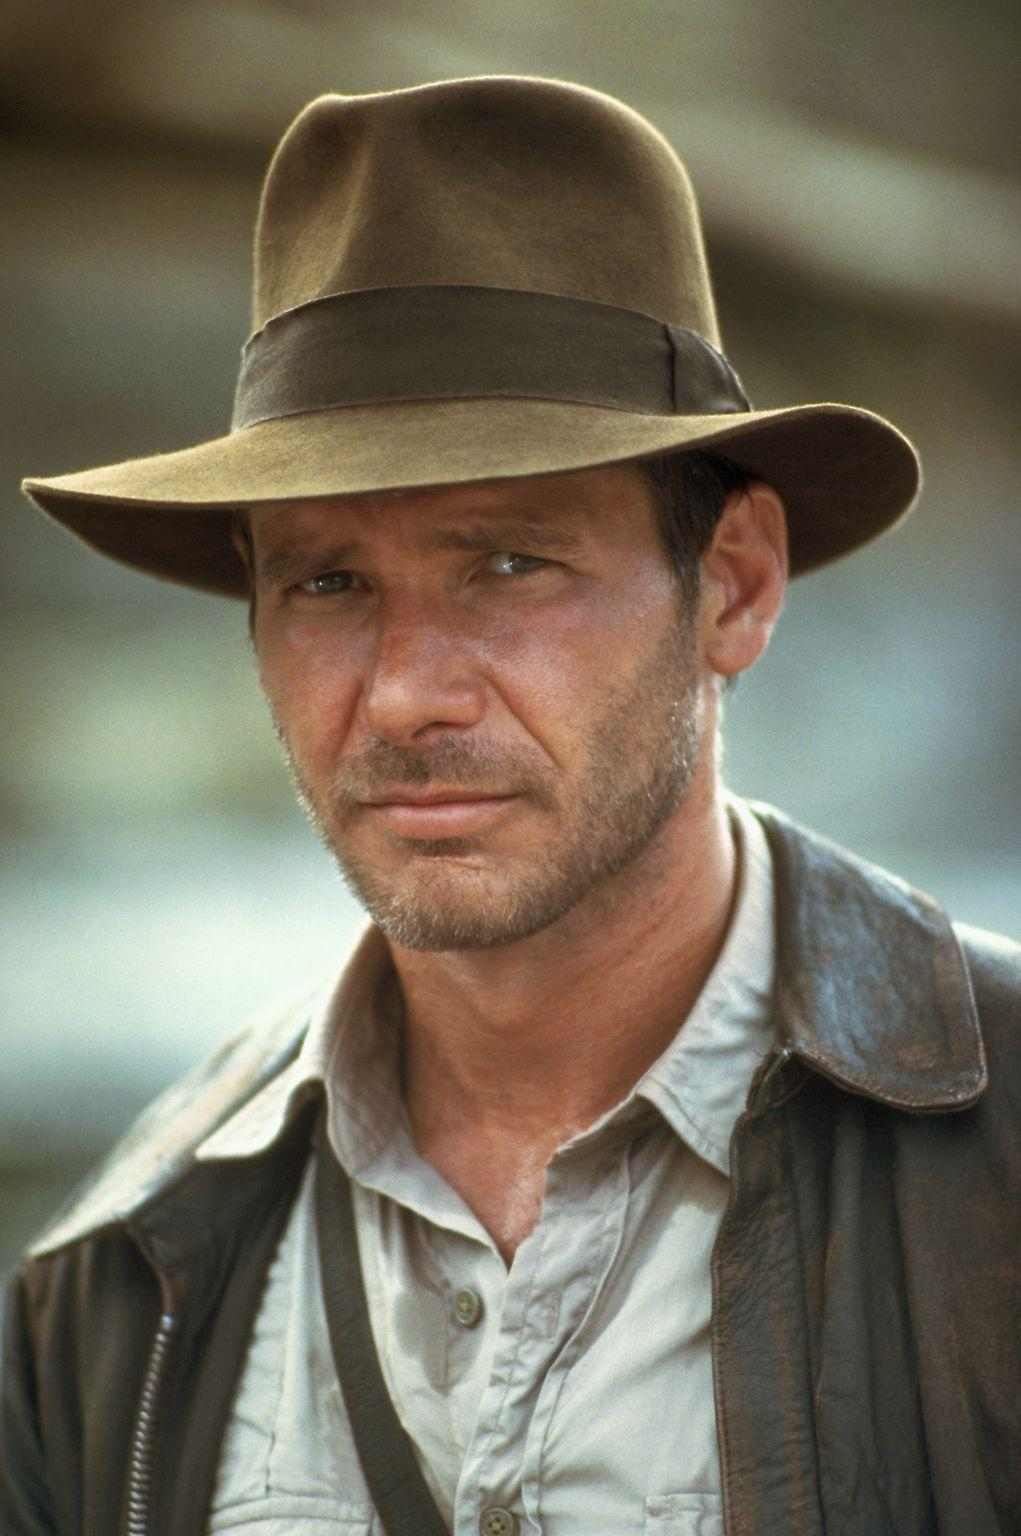 Indiana Jones 5 (19-07-2019 en los USA)